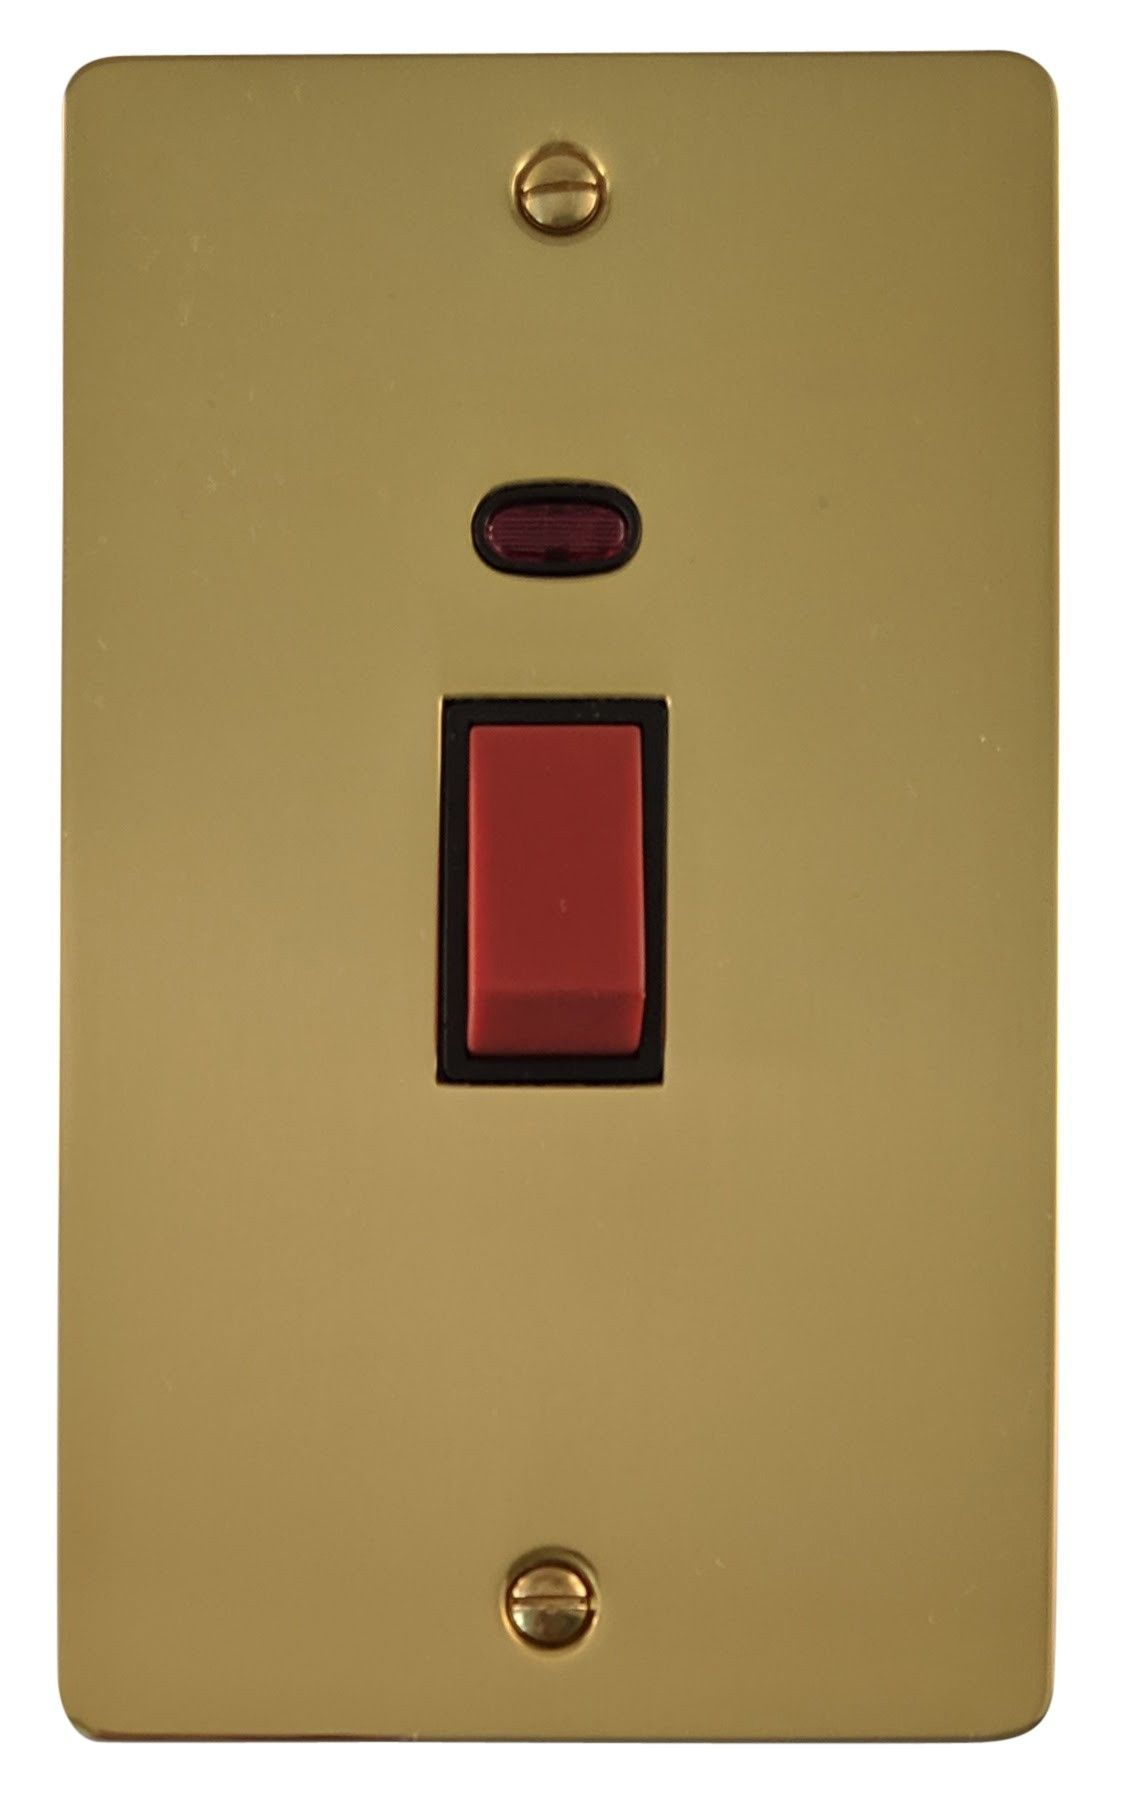 G&H FB28B Flat Plate Polished Brass 45 Amp DP Cooker Switch & Neon Vertical Plate